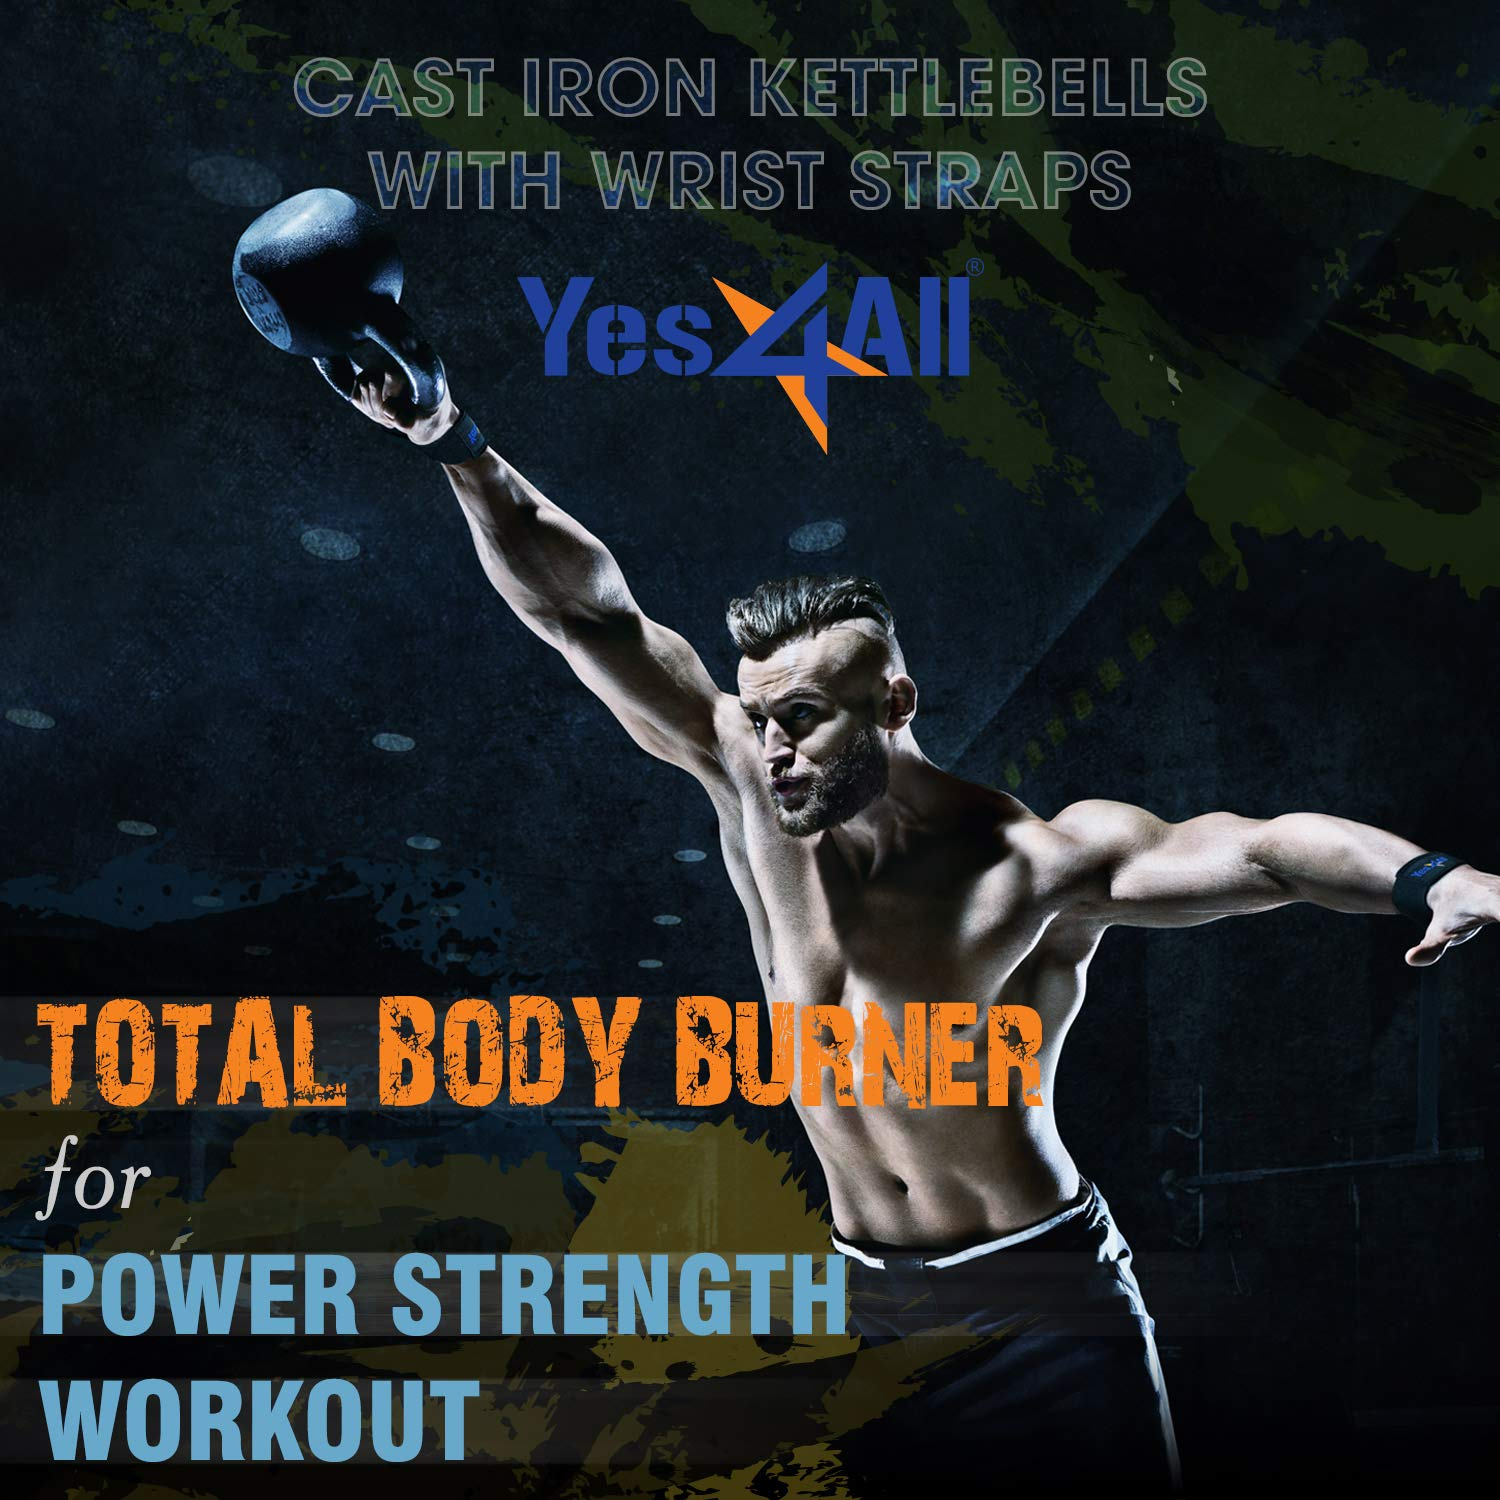 Yes4All Solid Cast Iron Kettlebell Weights Set – Great for Full Body Workout and Strength Training by Yes4All (Image #7)